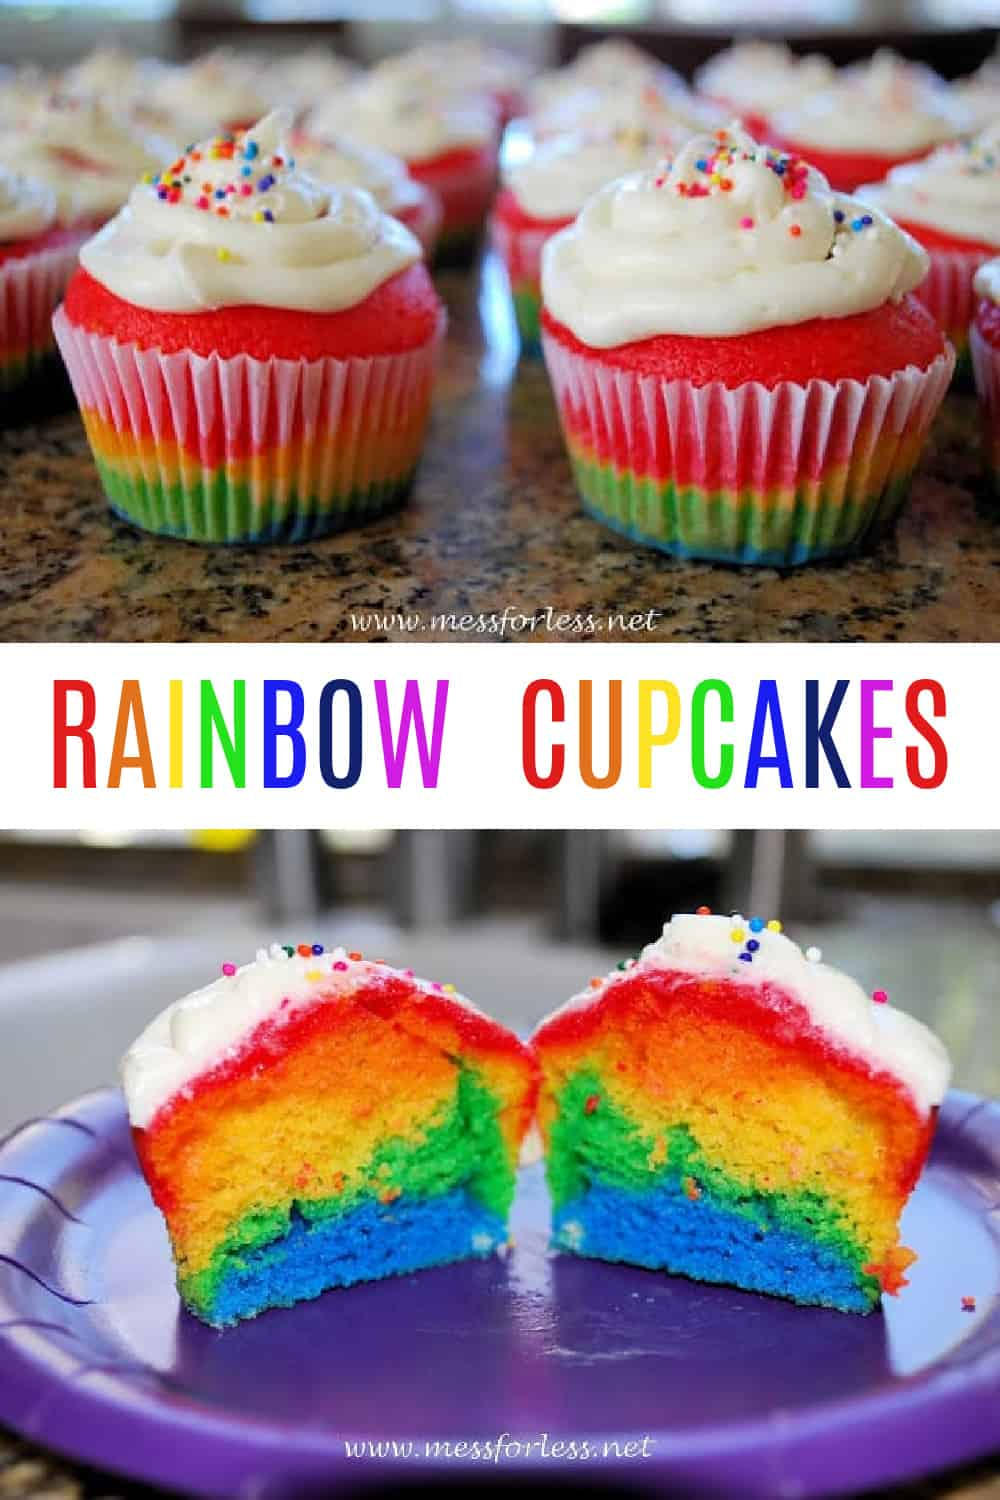 These Rainbow Cupcakes are easier to make than they look thanks to boxed cake mix. They are perfect for a rainbow themed party or any special occasion.